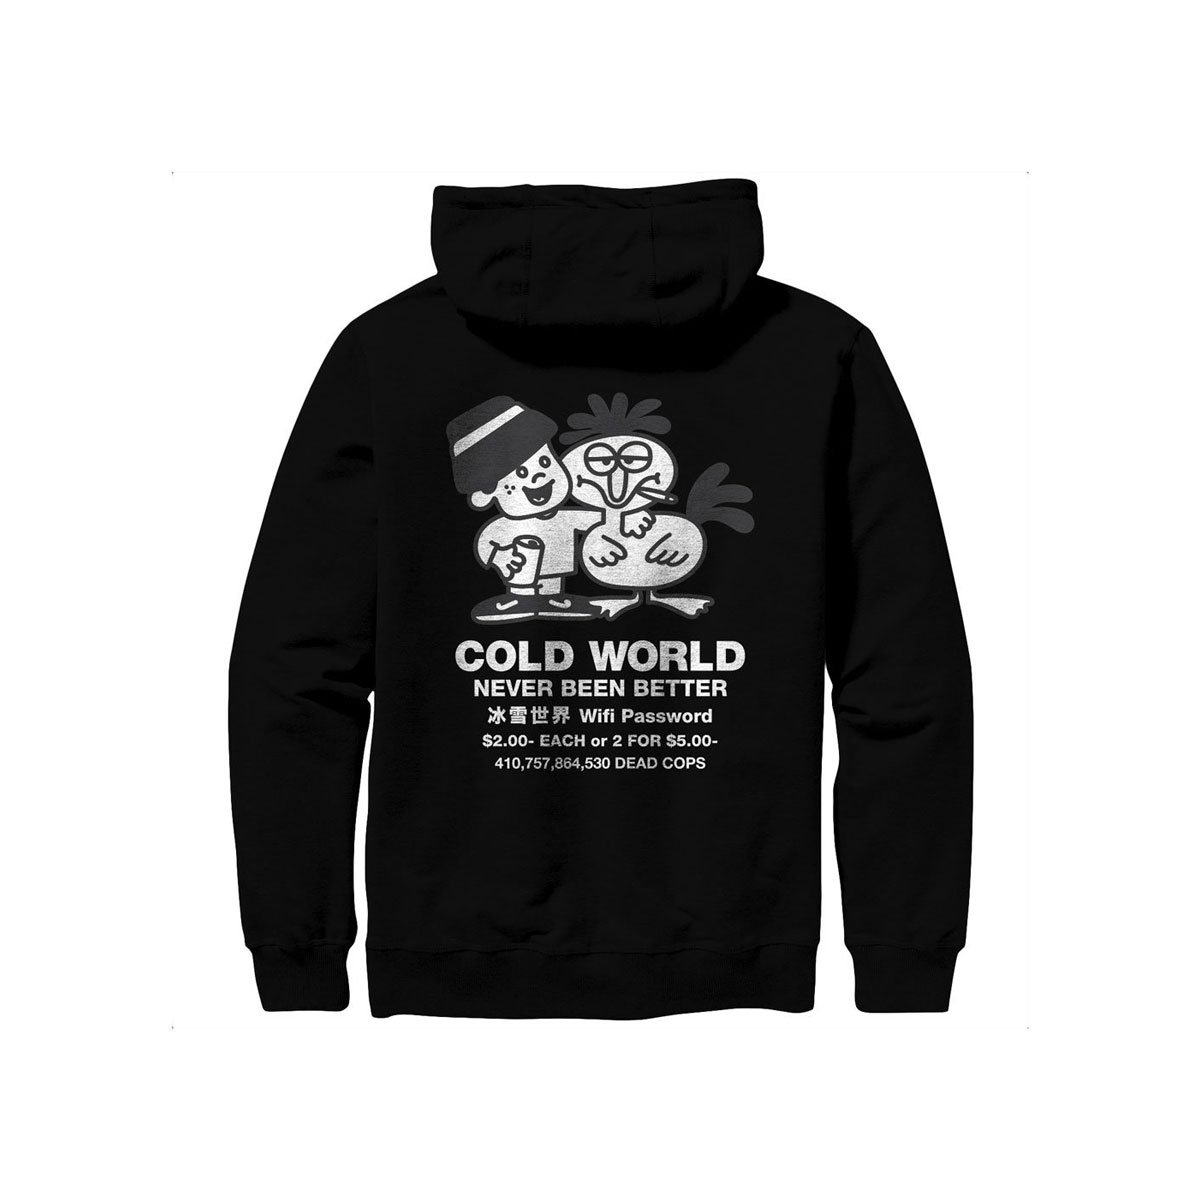 【COLD WORLD FROZEN GOODS/コールドワールドフローズングッズ】NEVER BEEN BETTER HOODIES パーカー / BLACK